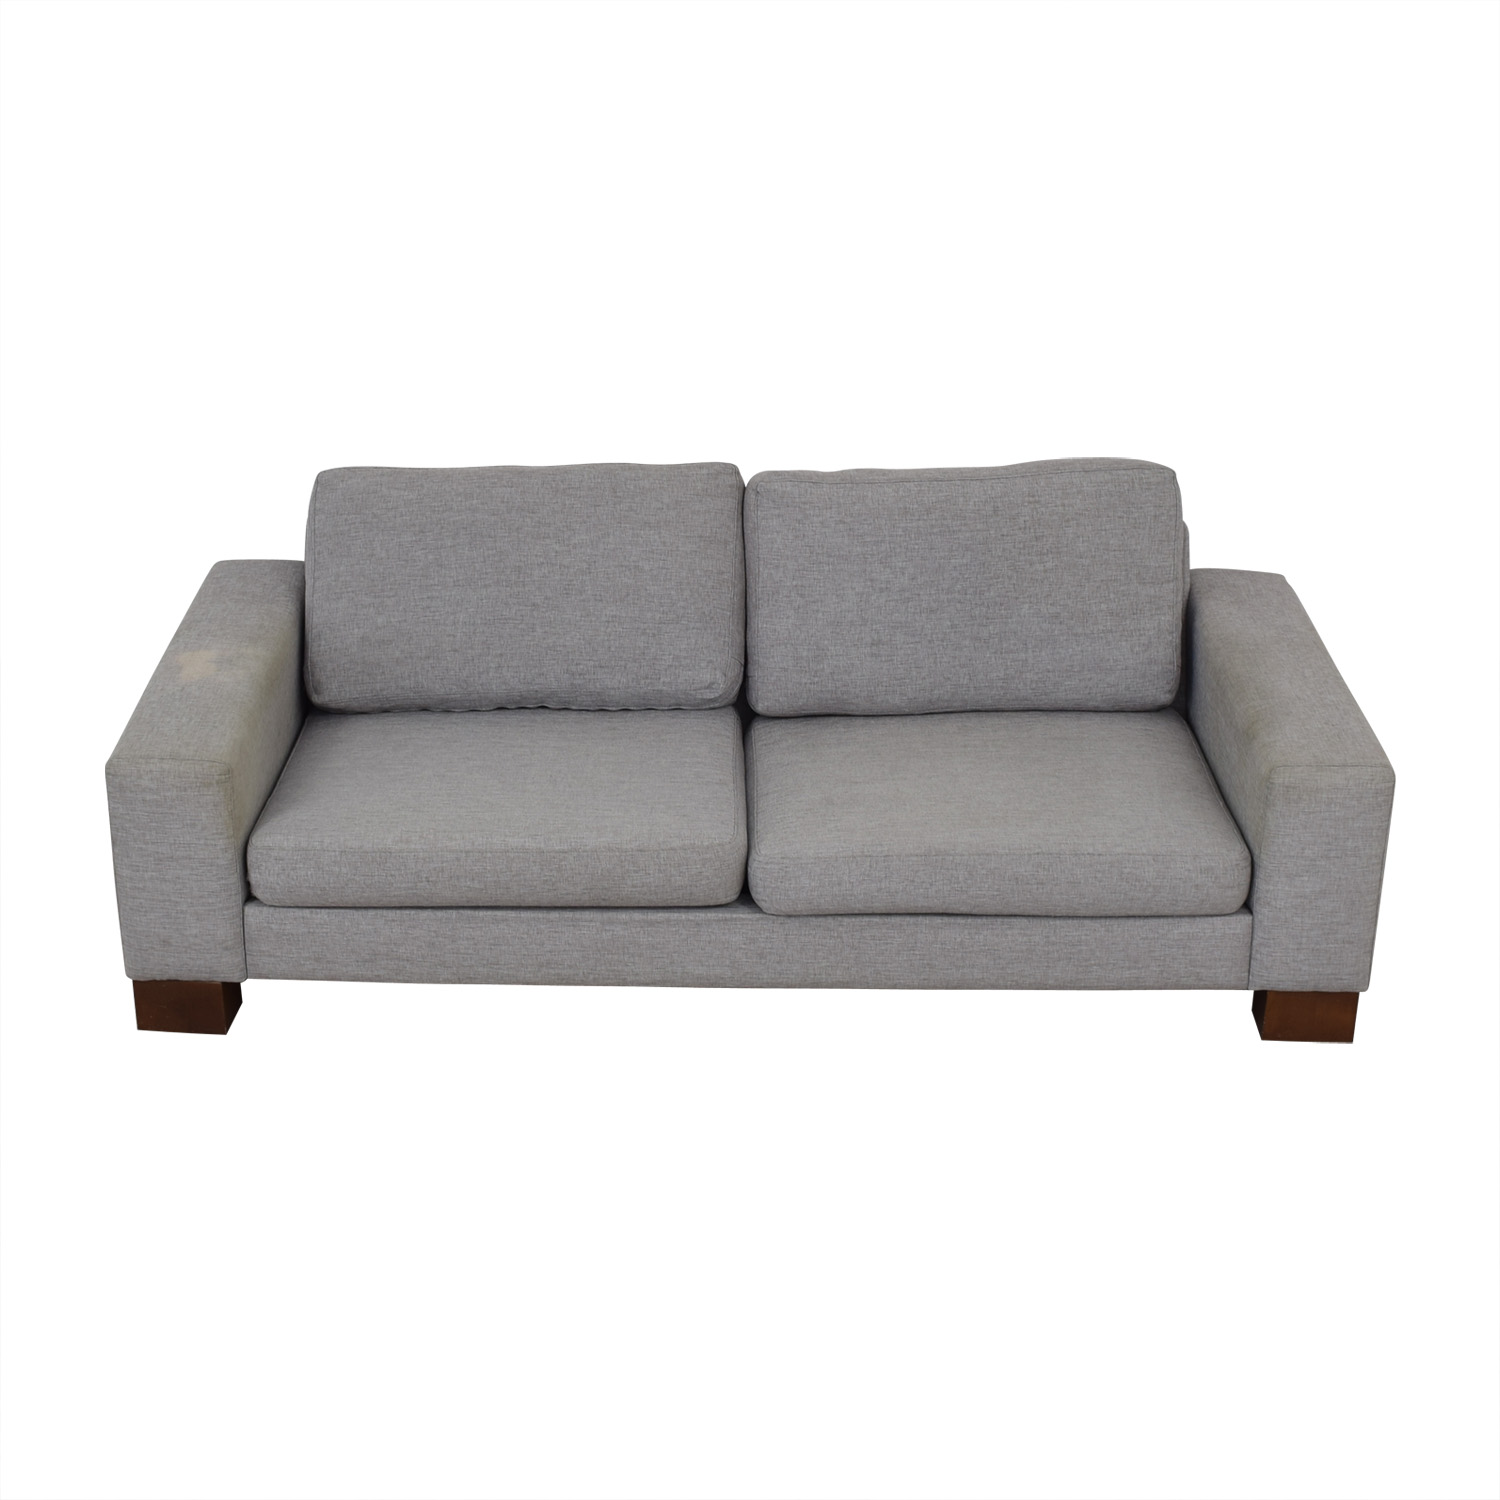 Boconcept Sofa 84 Off Boconcept Boconcept Grey Two Cushion Sofa Sofas